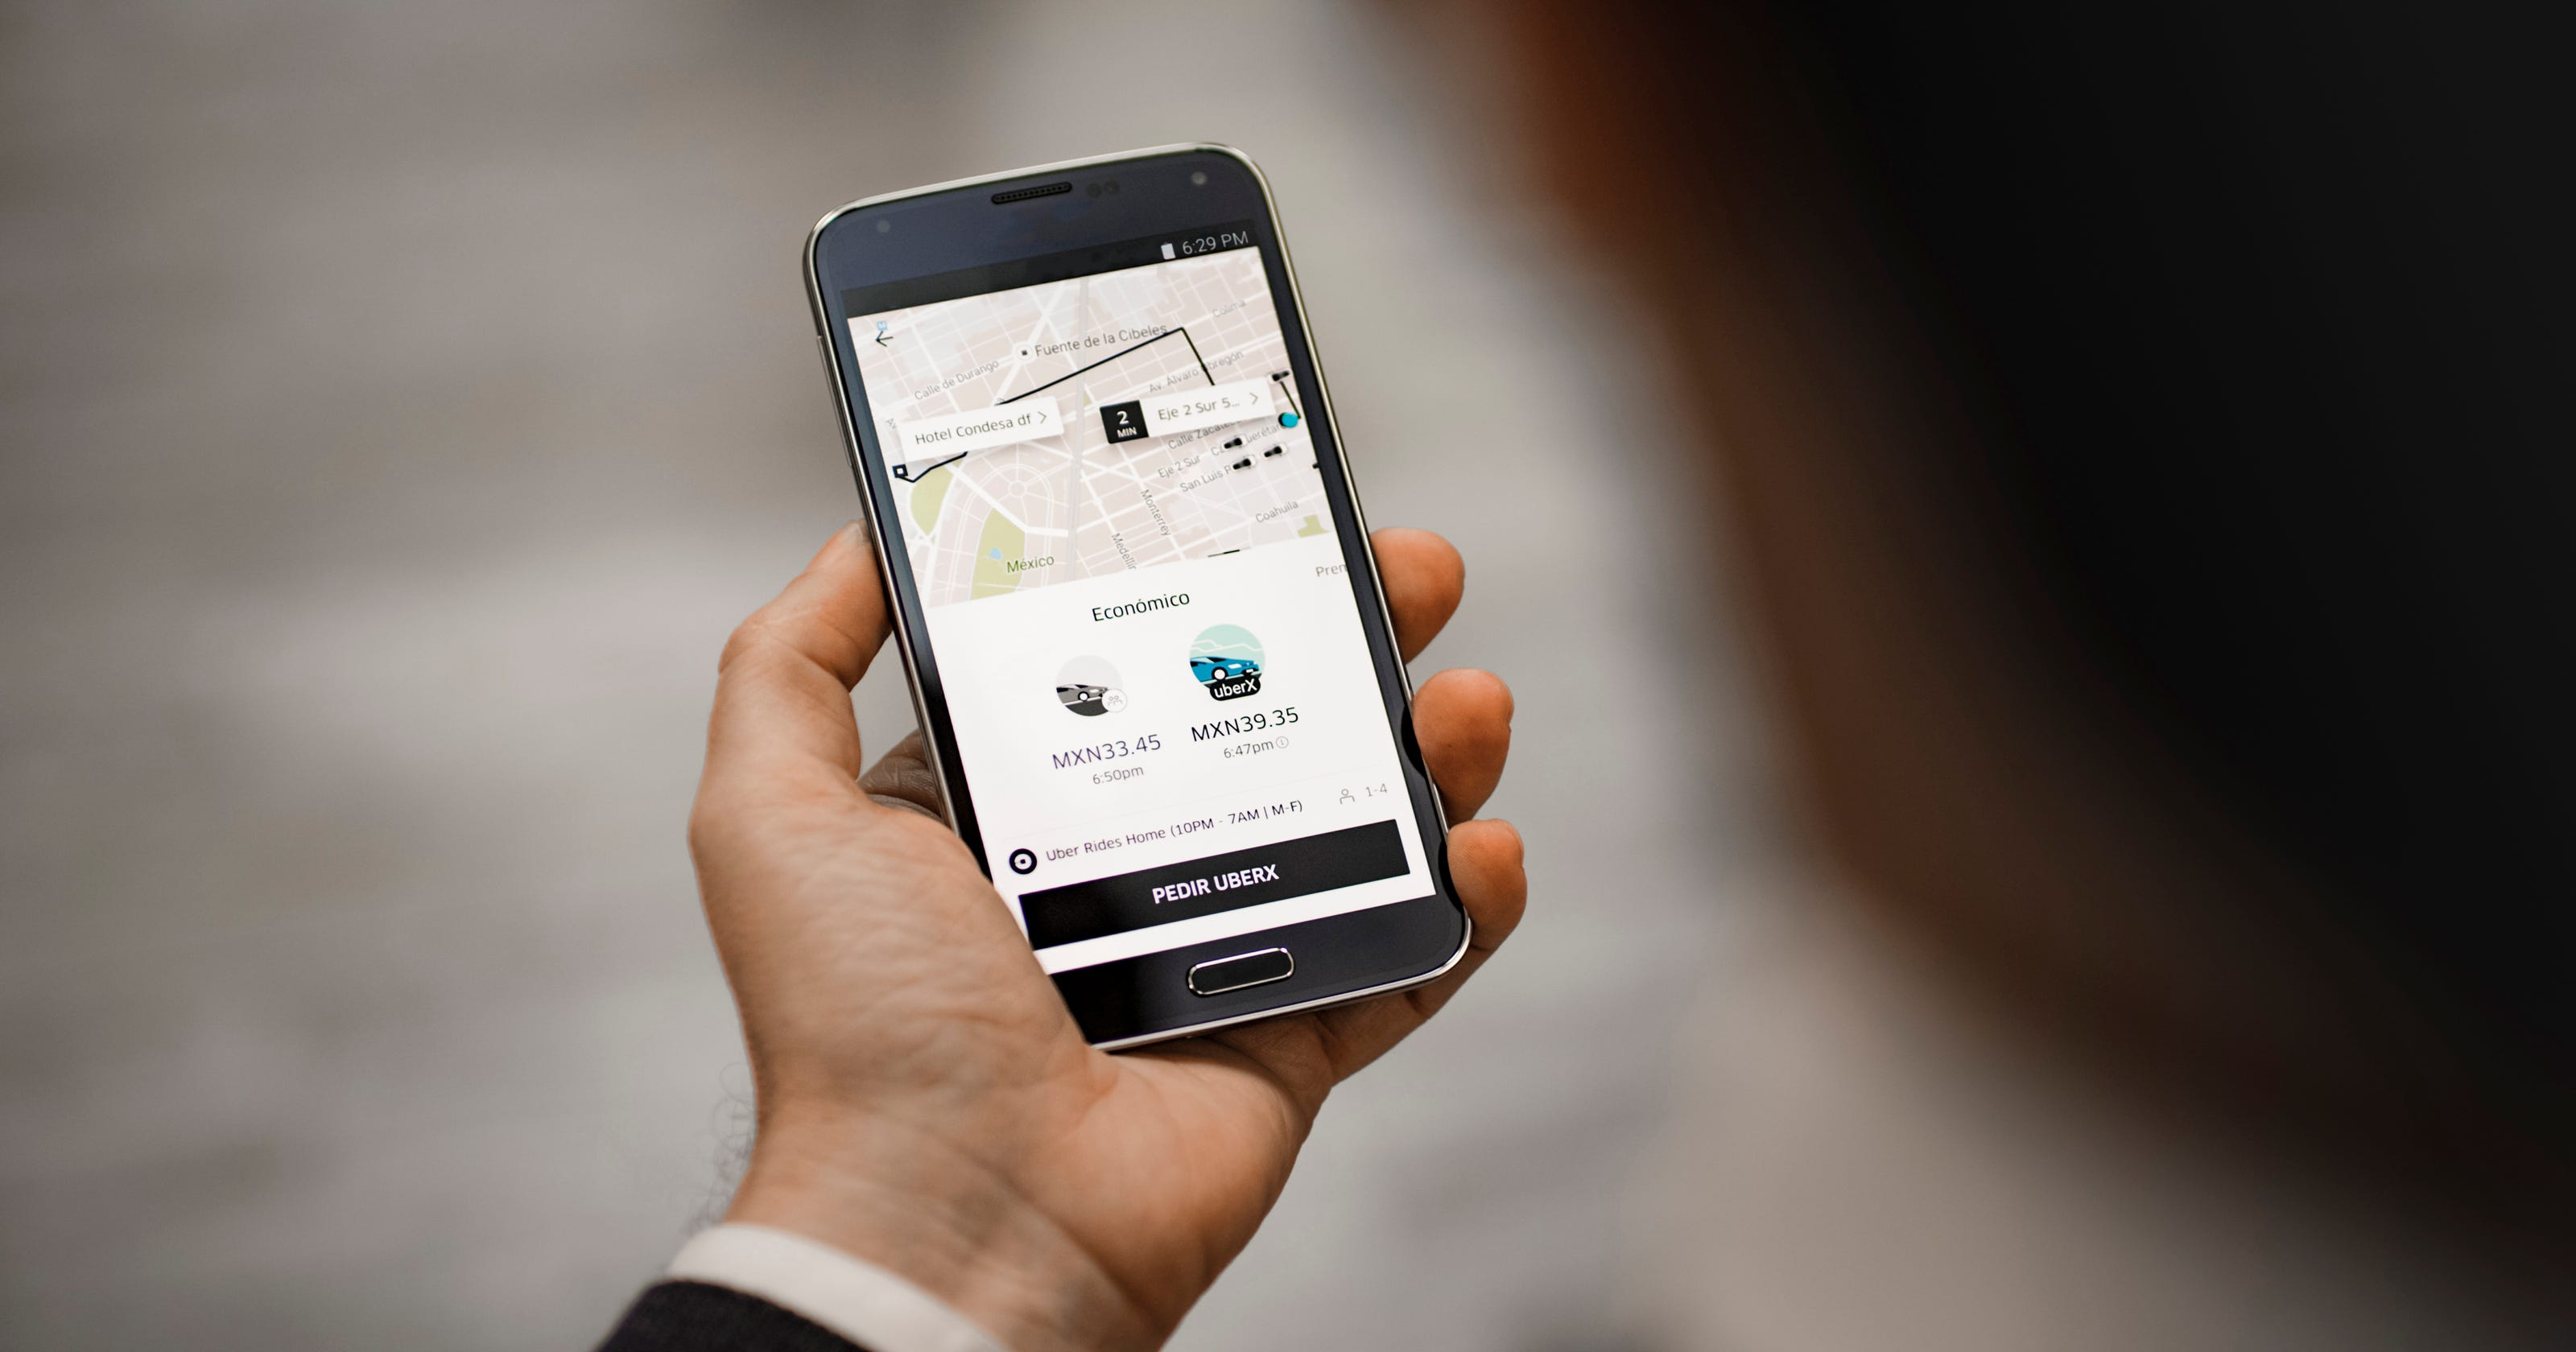 Cincinnati Uber drivers can now earn tips, which the company